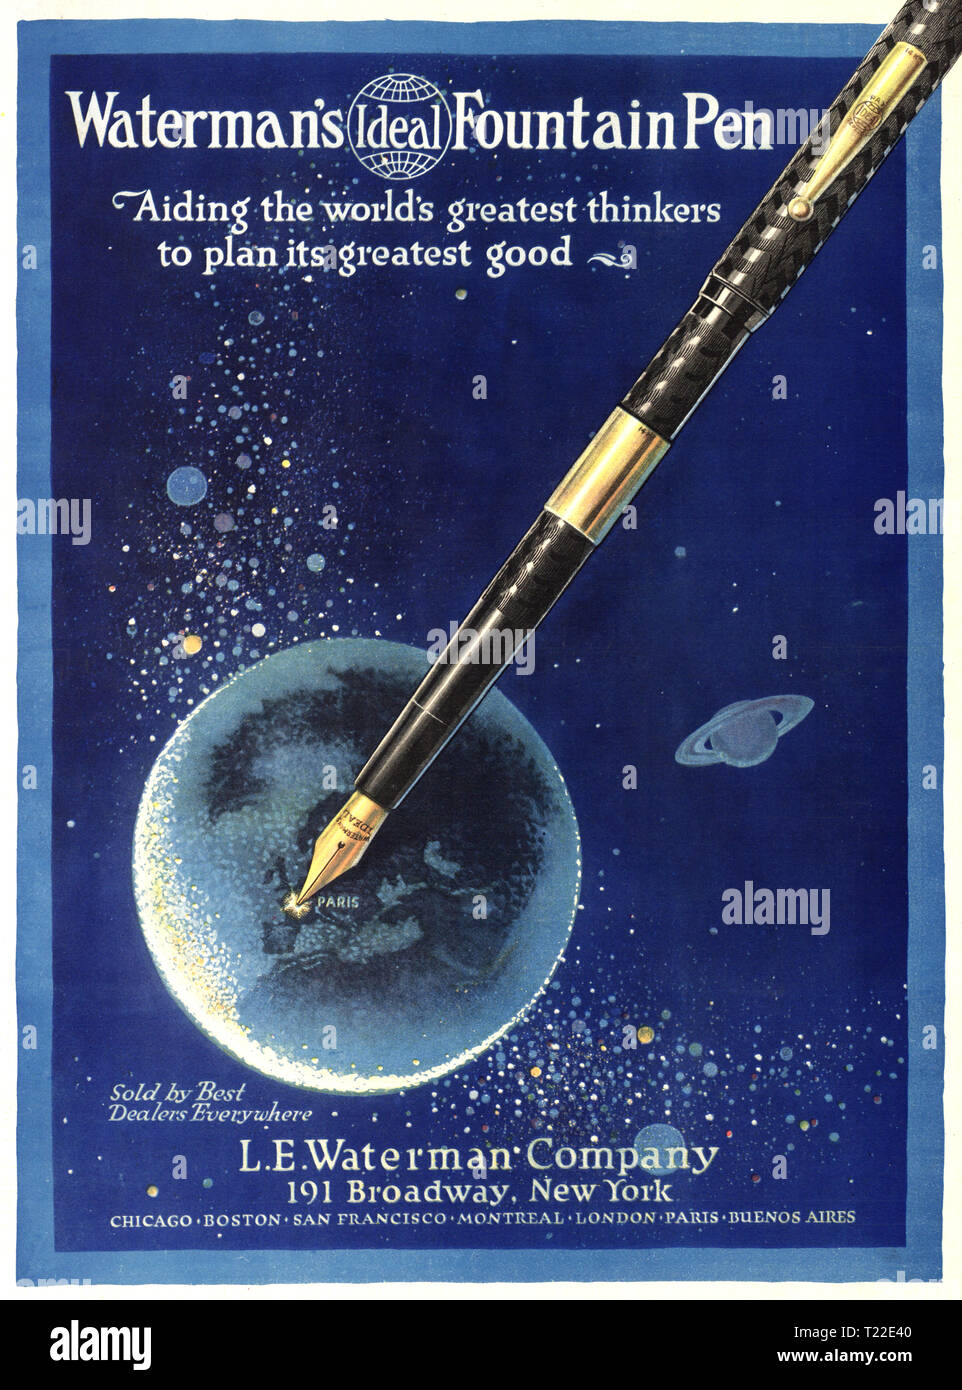 WATERMAN'S FOUNTAIN PEN 1900's Vintage Historic Advertisement for the L. E Waterman Company featuring a fountain pen writing on a world globe 'Aiding the worlds greatest thinkers to plan its greatest good' 13 April 1919 New-York Tribune Broadway New York August 24, 1919 - Stock Image